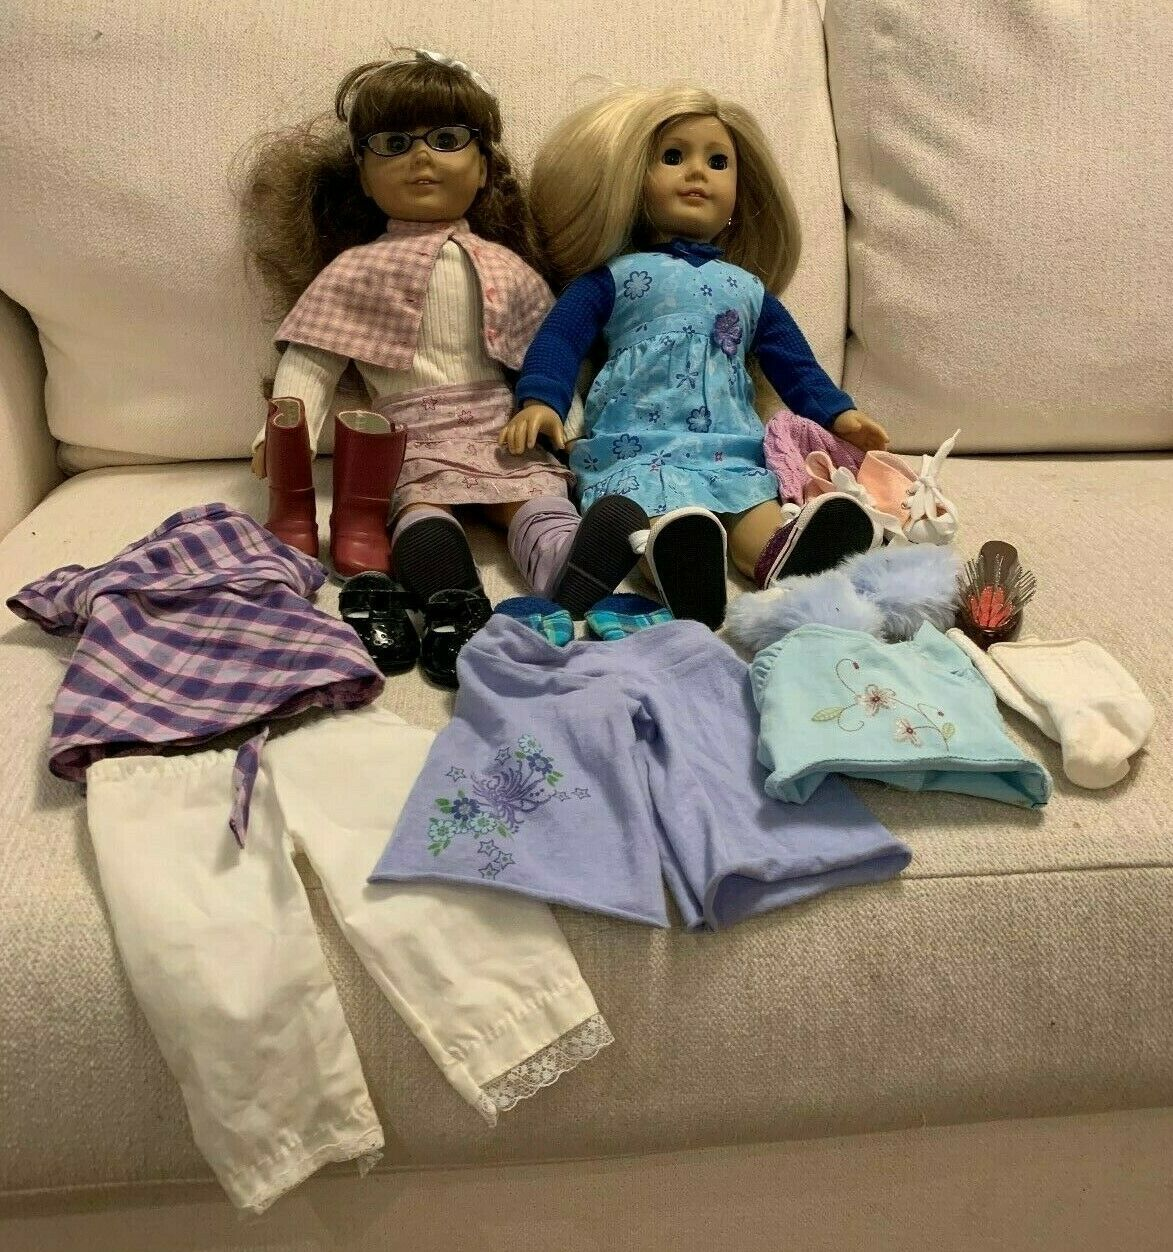 Two American Girl Dolls Molly & Just Like You  22 Blonde, 7 schuhe, Clothes, More